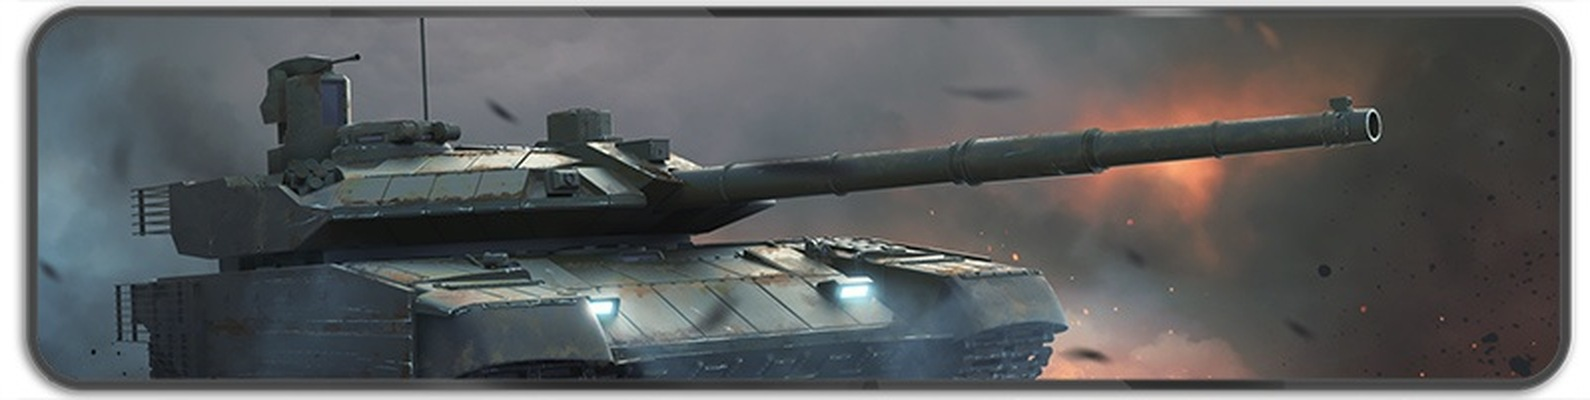 Генератор бонус кодов world of tanks blitz